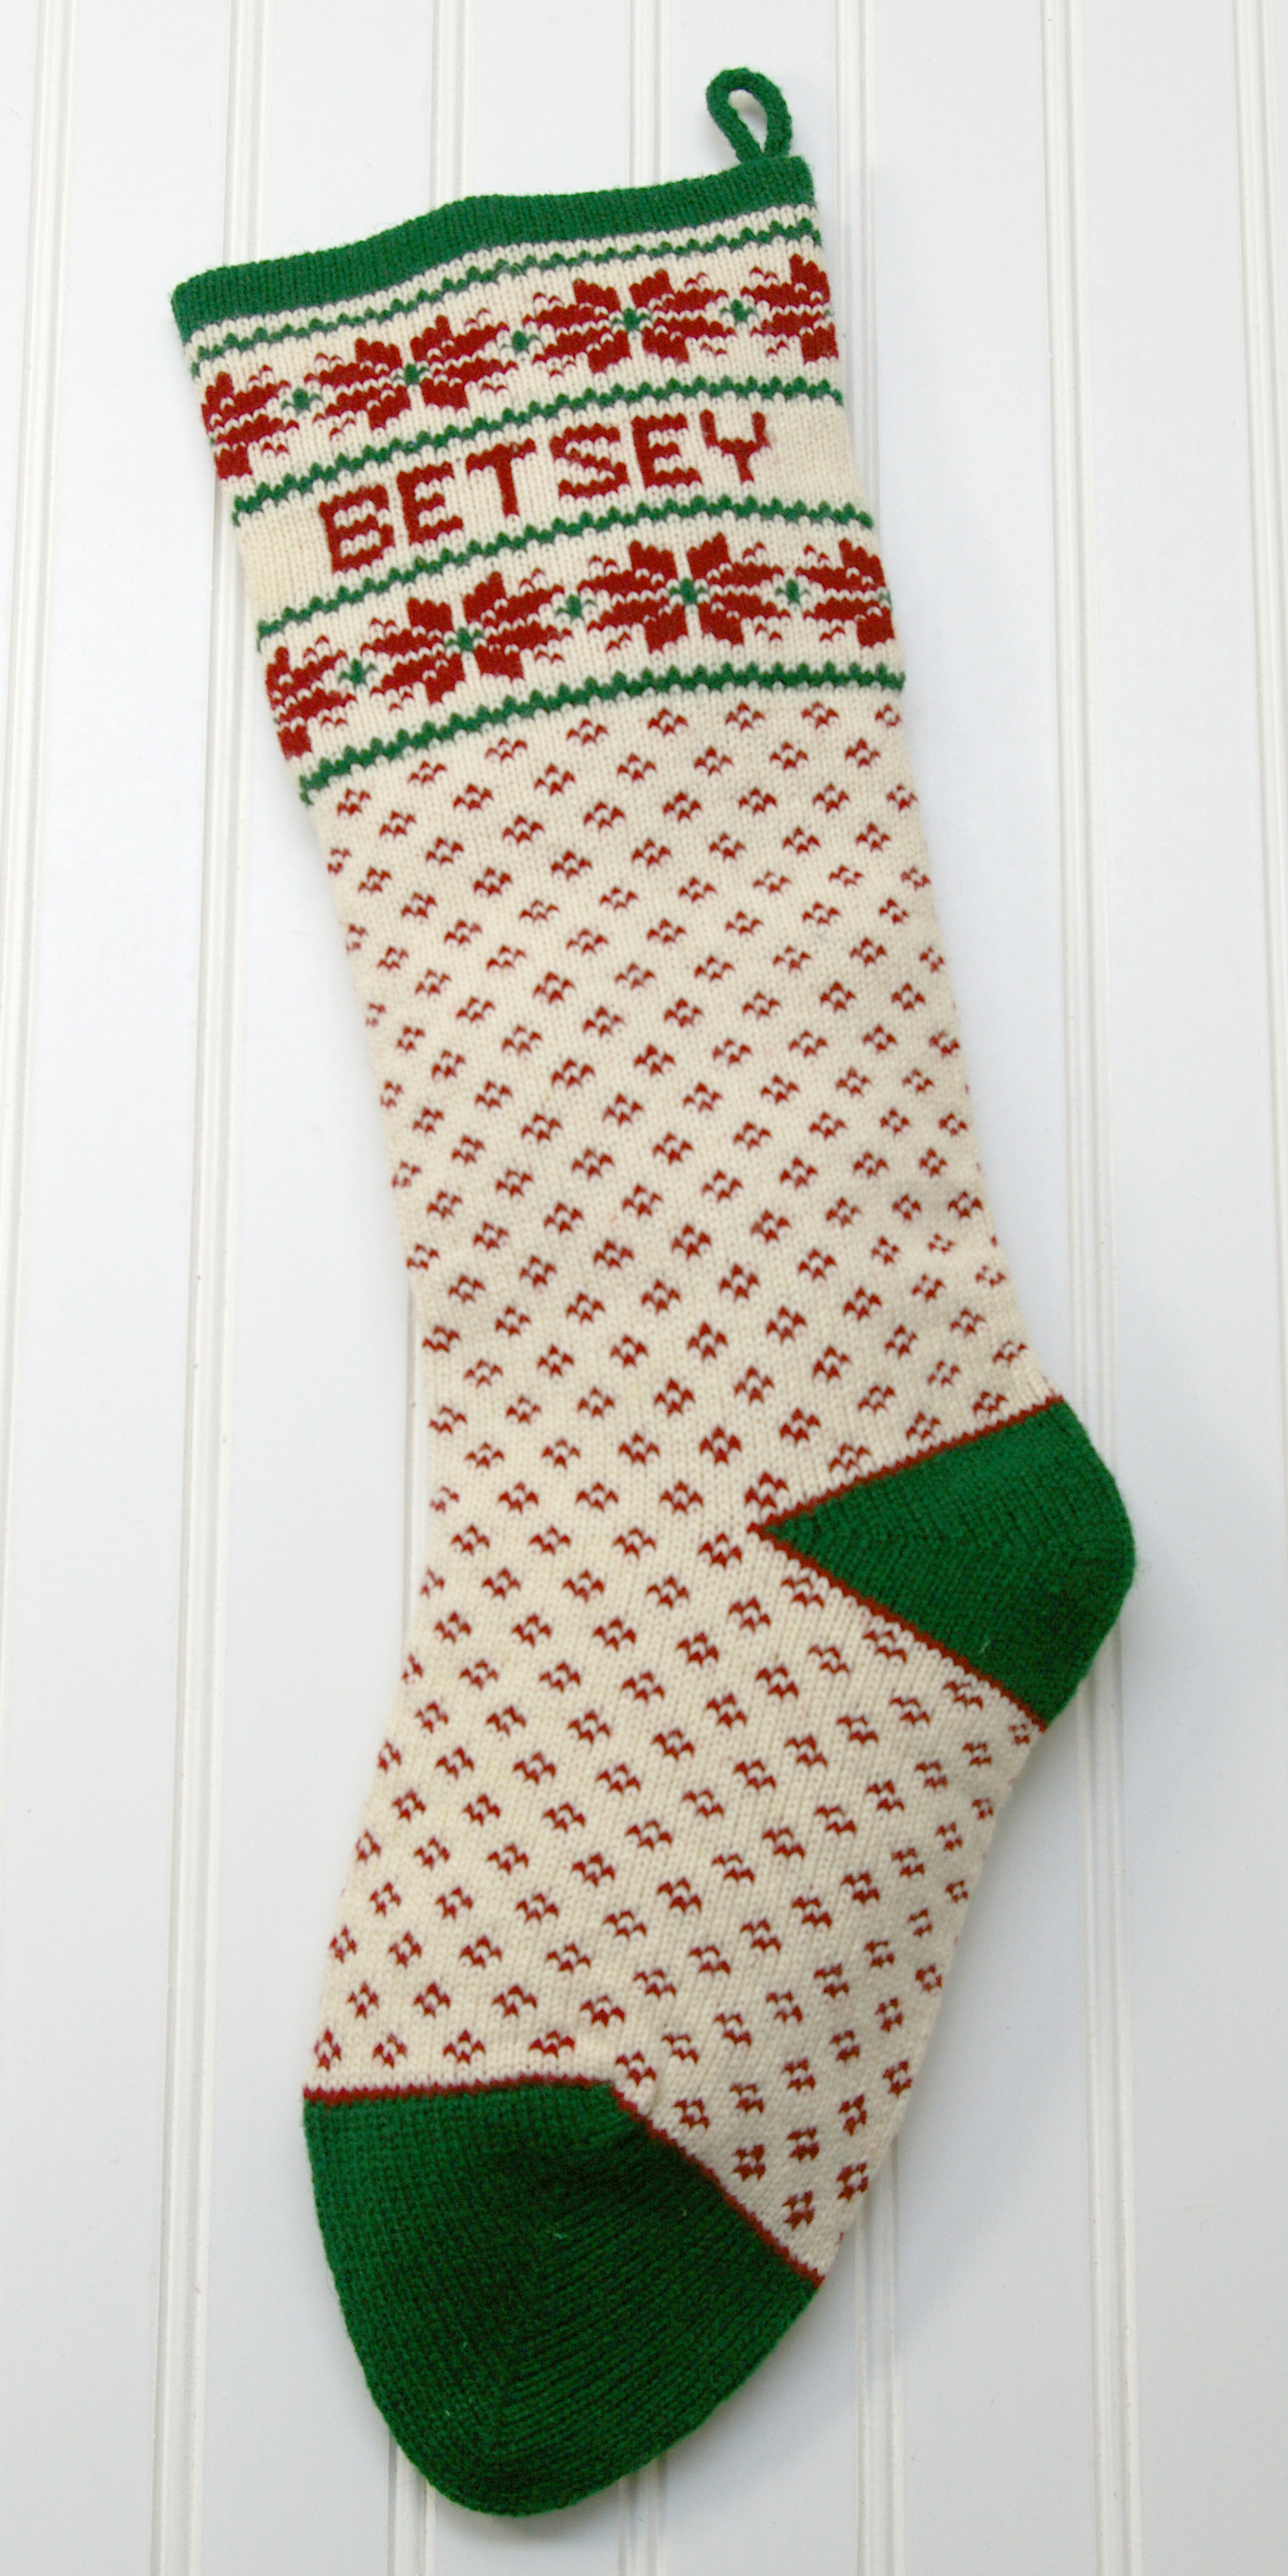 Stocking Styles - Specialties in Wool